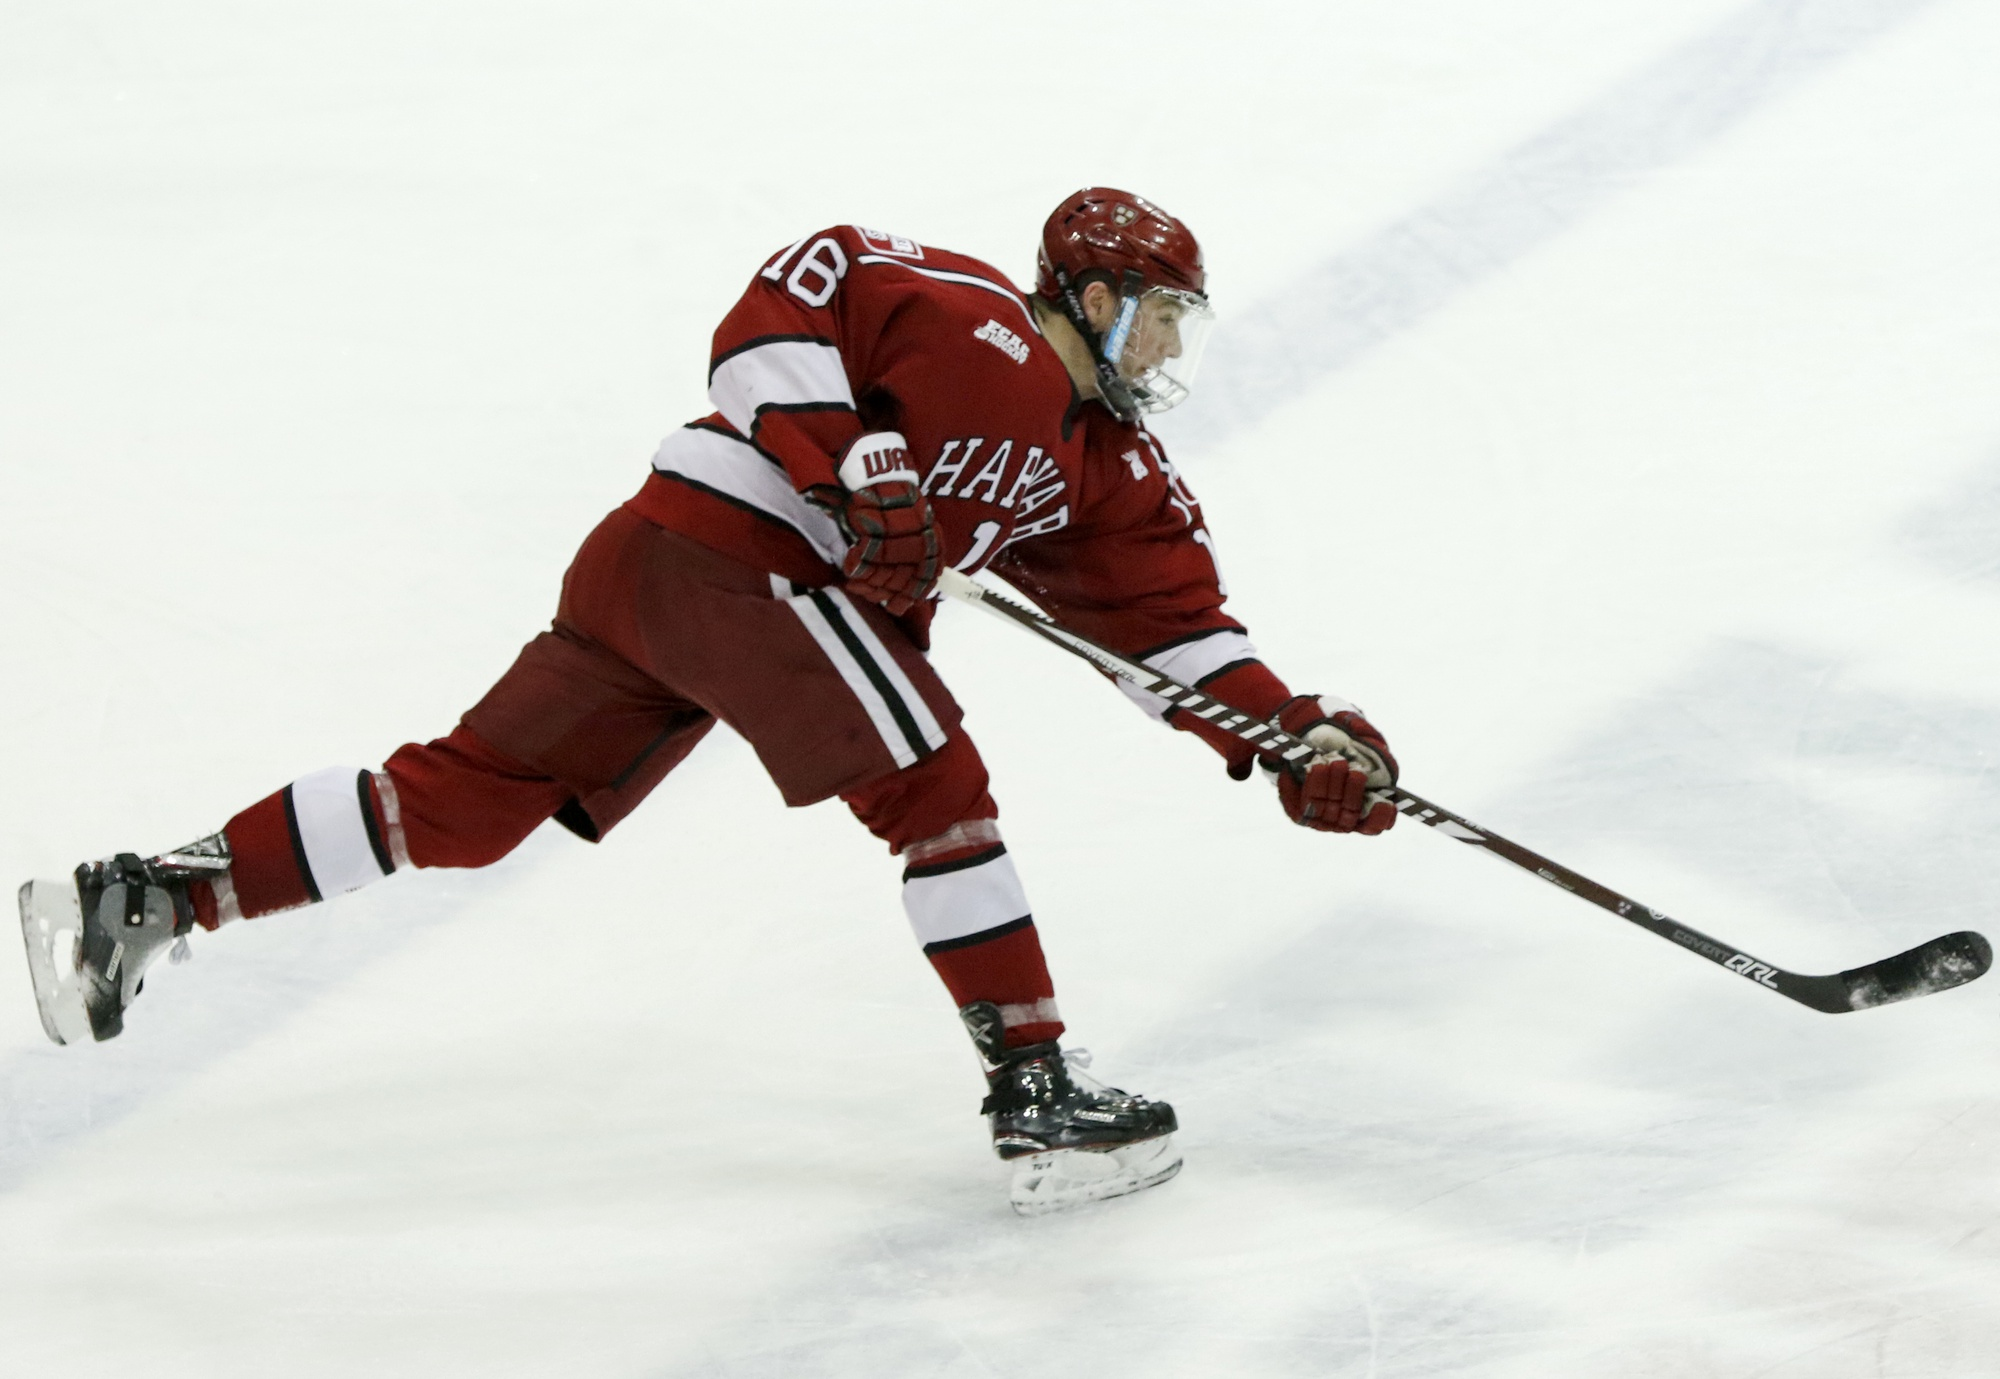 Junior forward Ryan Donato will be among the first NCAA players to represent USA Hockey in the Olympics since 1994, the last time NHL players were absent from the Games.